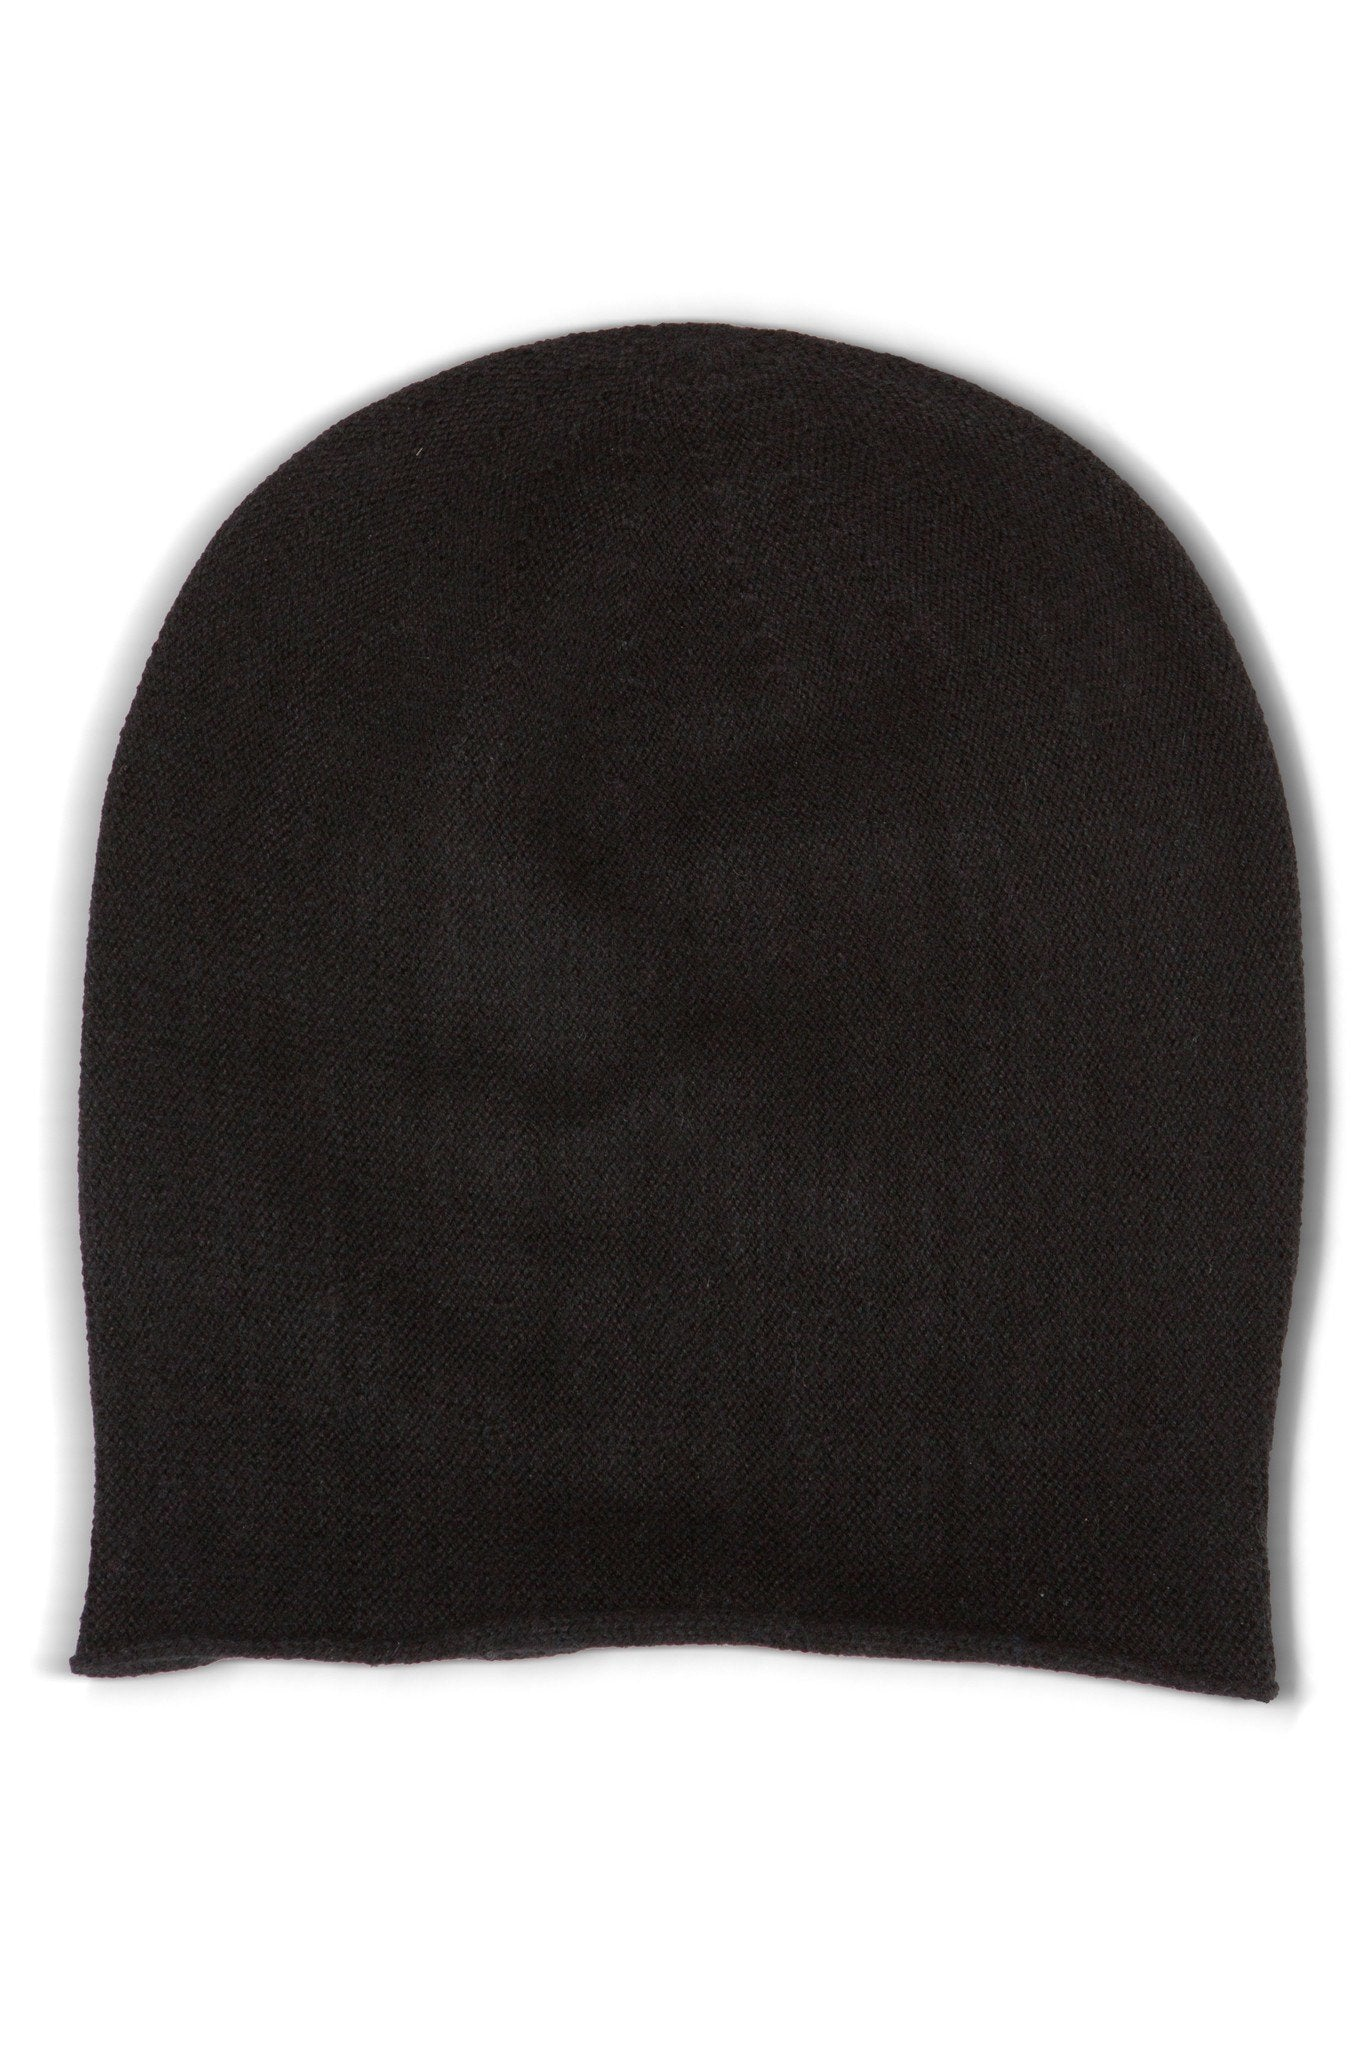 9675f81a6385f Men s 100% Pure Cashmere Slouchy Beanie - Fishers Finery